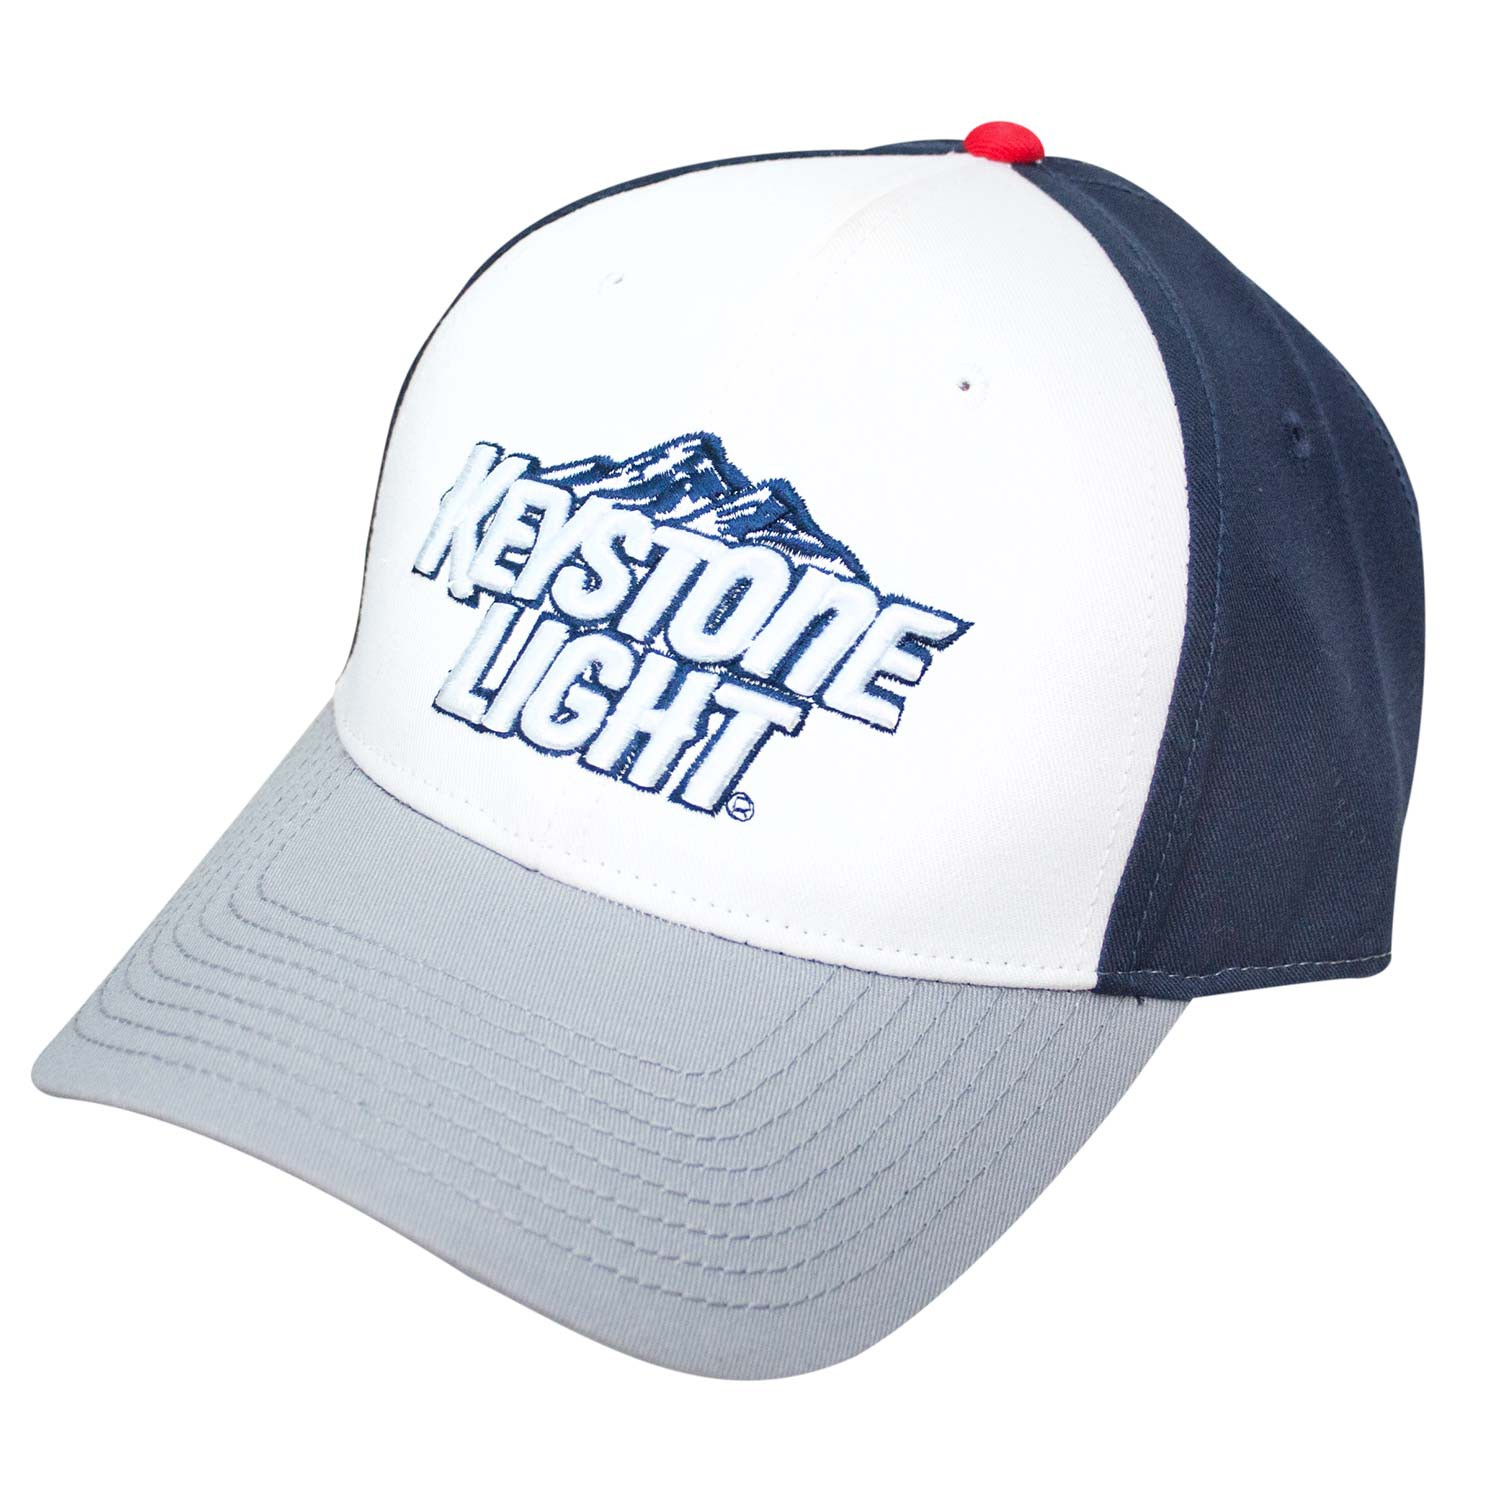 Keystone Light White And Blue Adjustable Hat